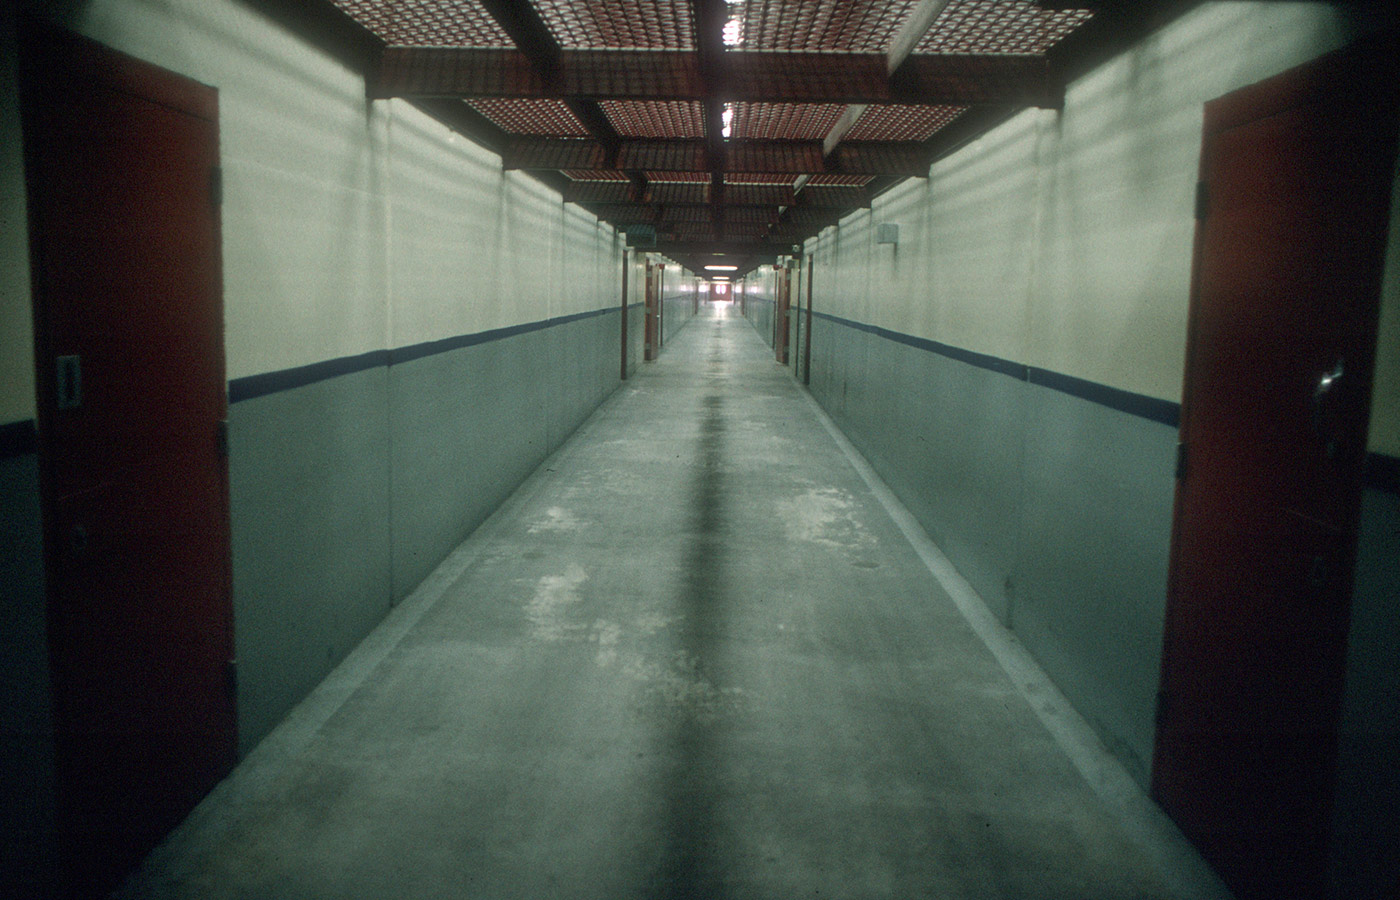 01 May 2000, California, USA --- A hallway in California's maximum security prison Pelican Bay. --- Image by © Andrew Lichtenstein/Corbis